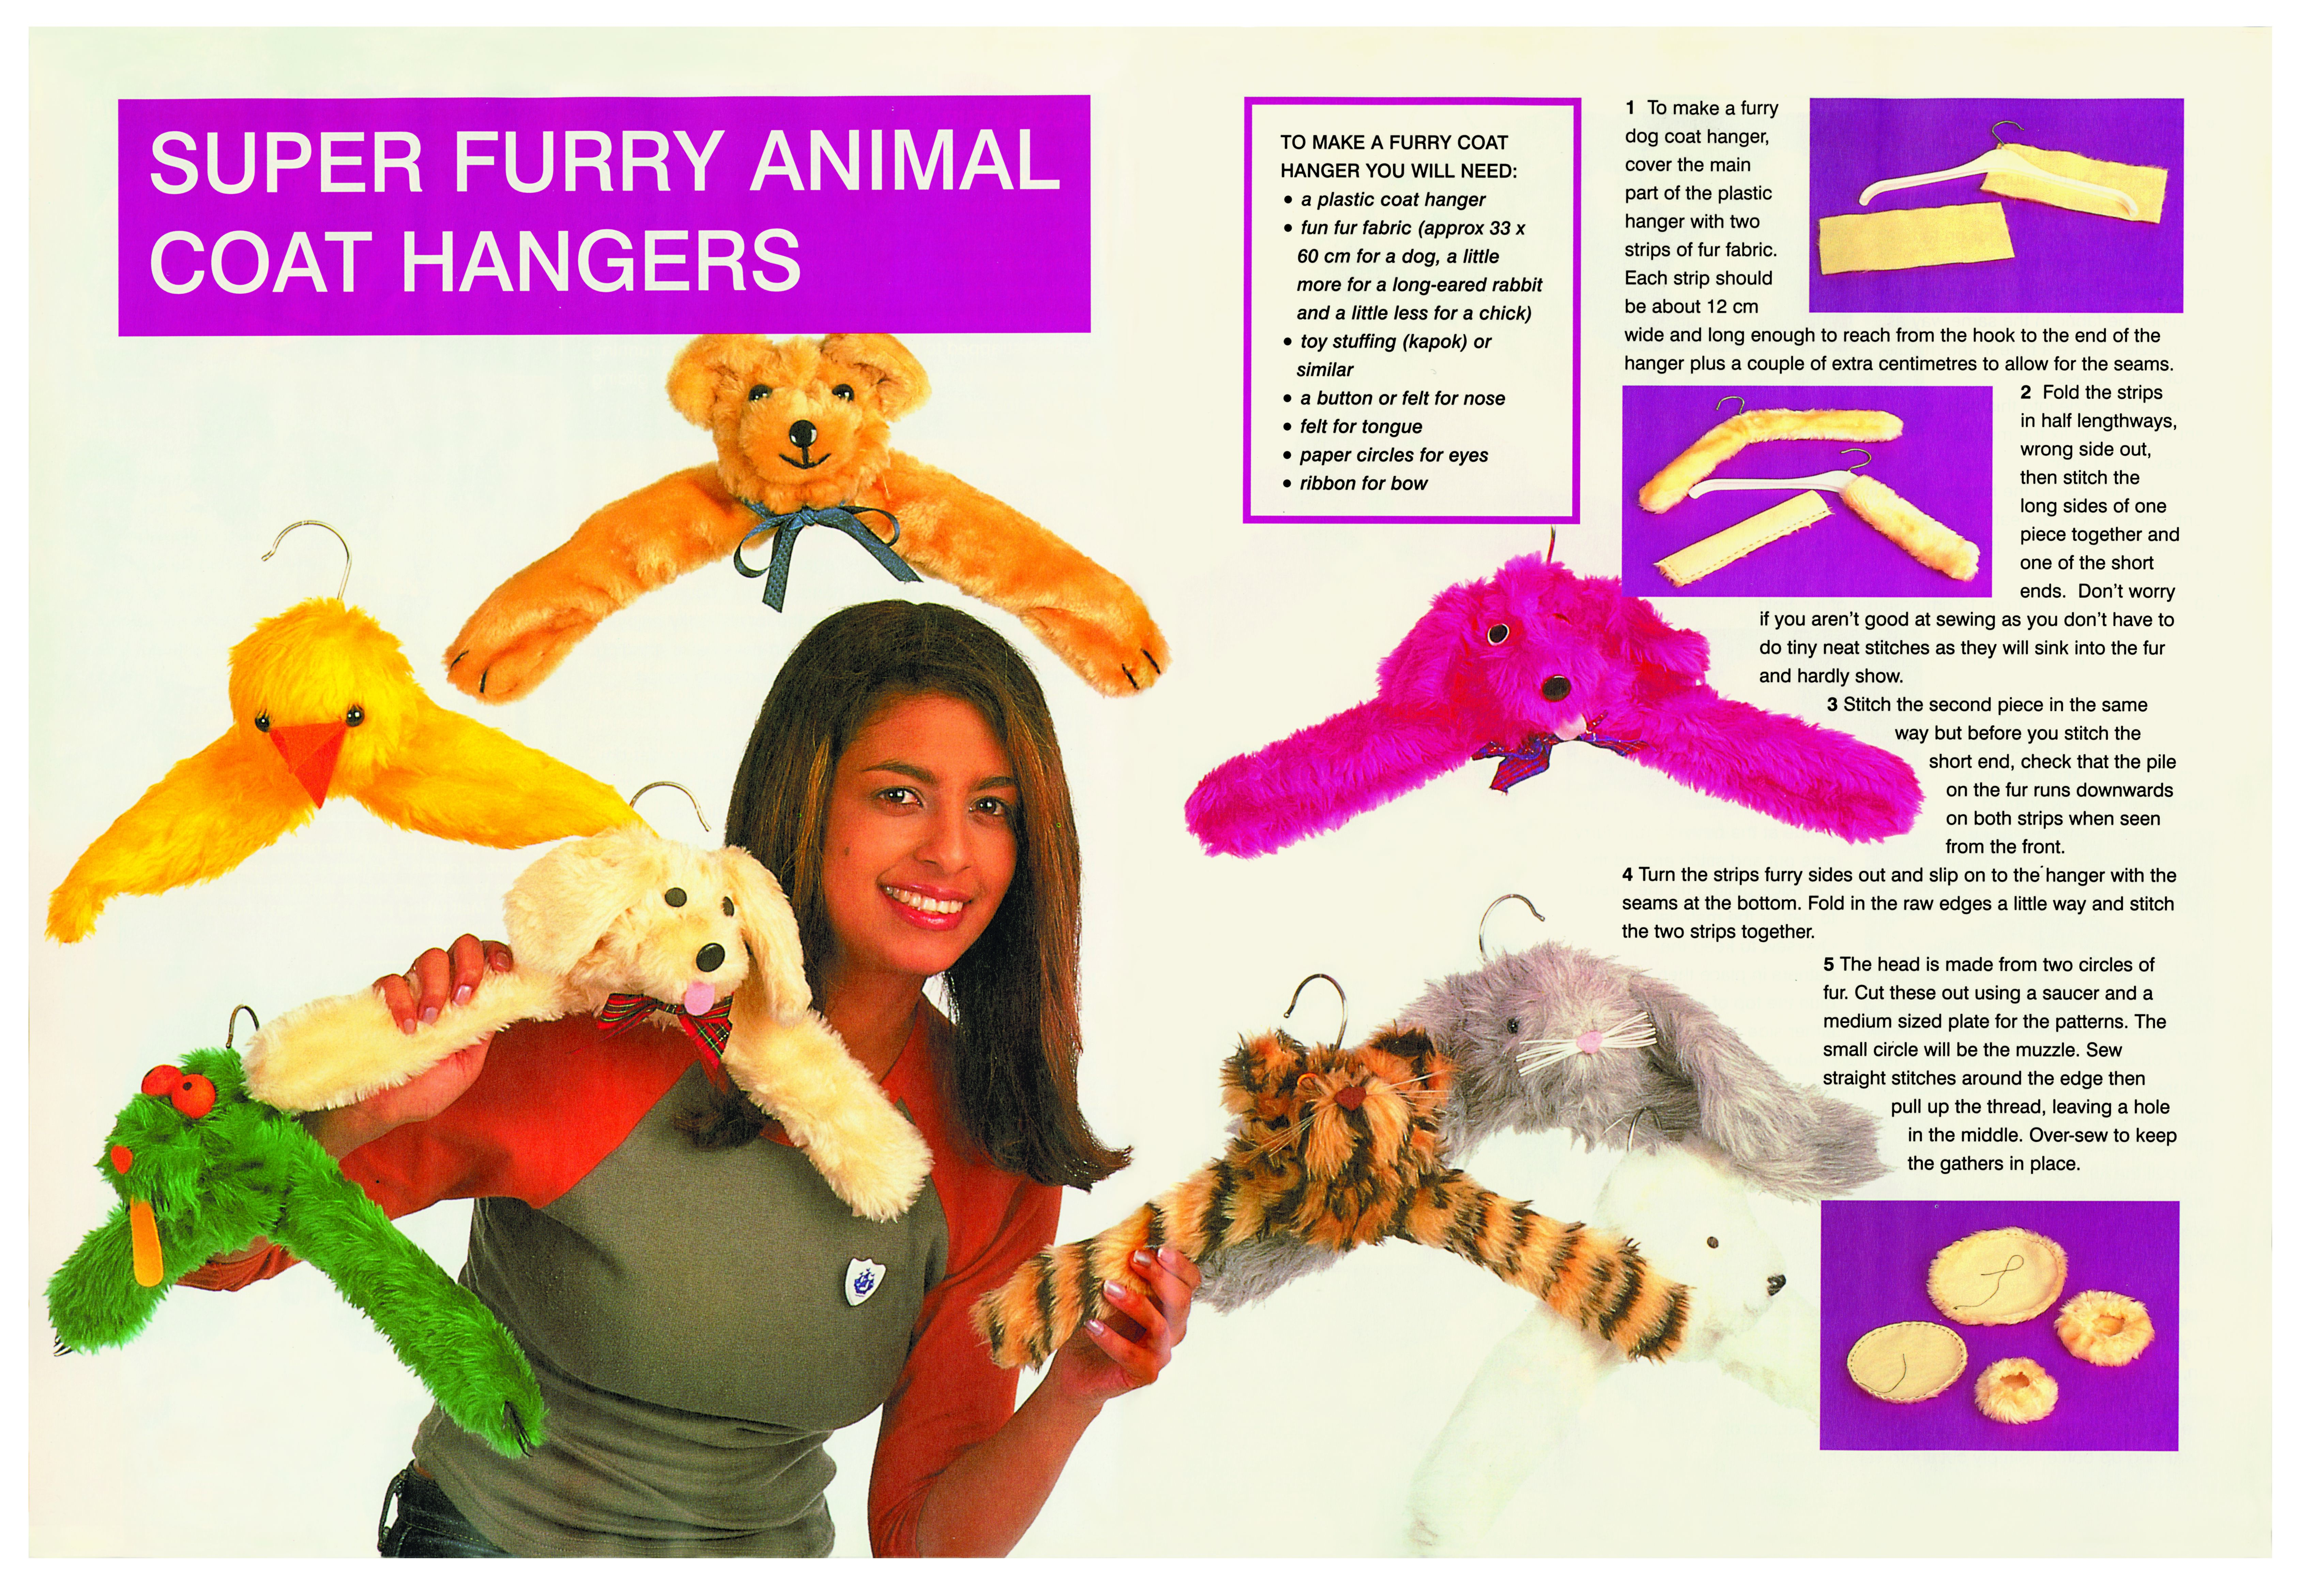 A double page spread on super furry animal coat hangers